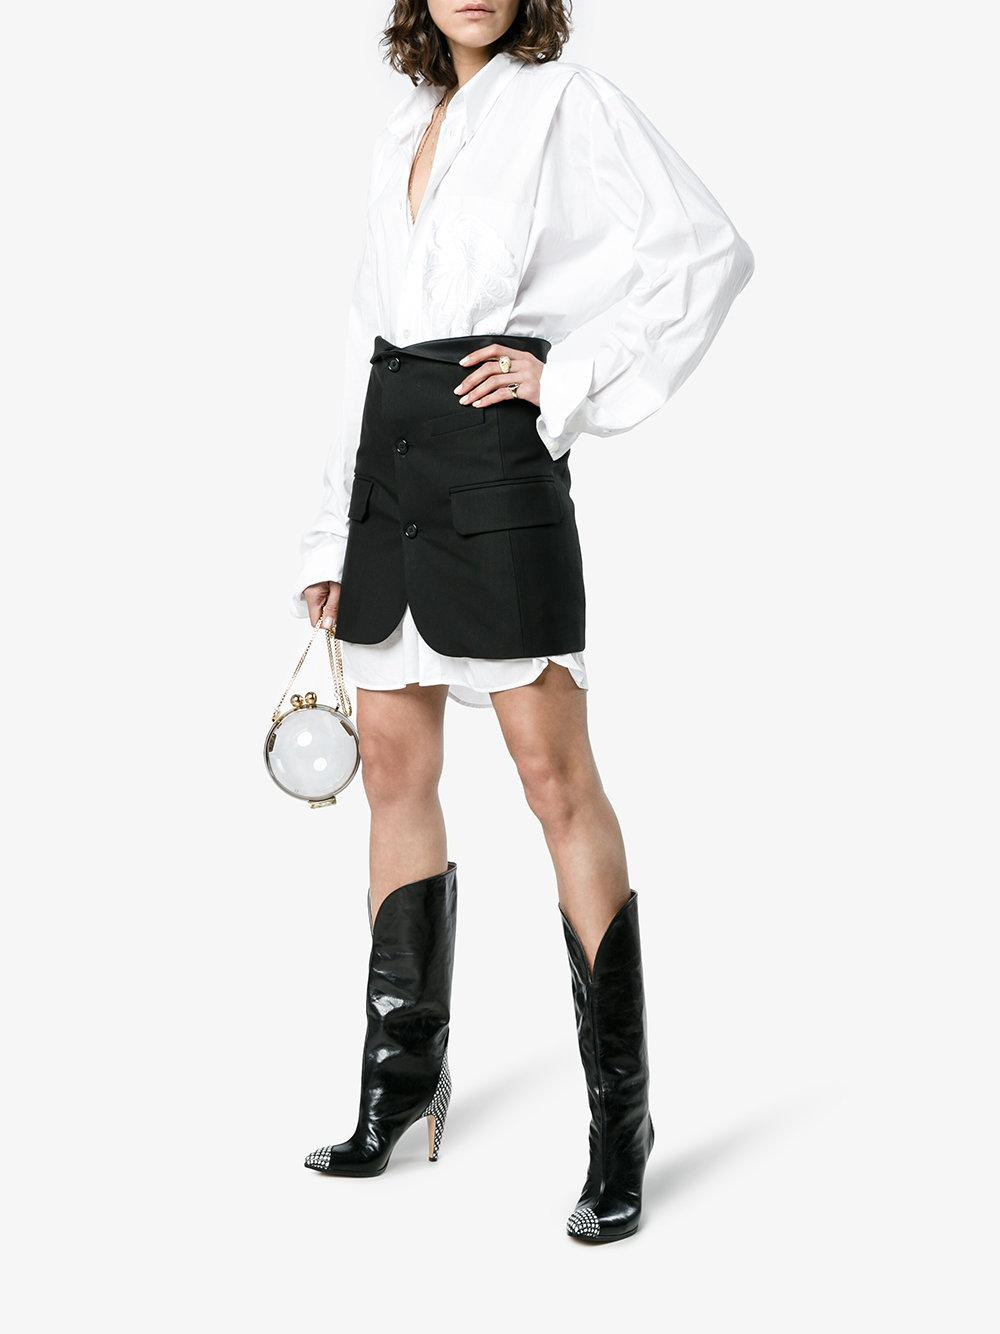 Givenchy Black 95 Spotted Leather Knee High Boots